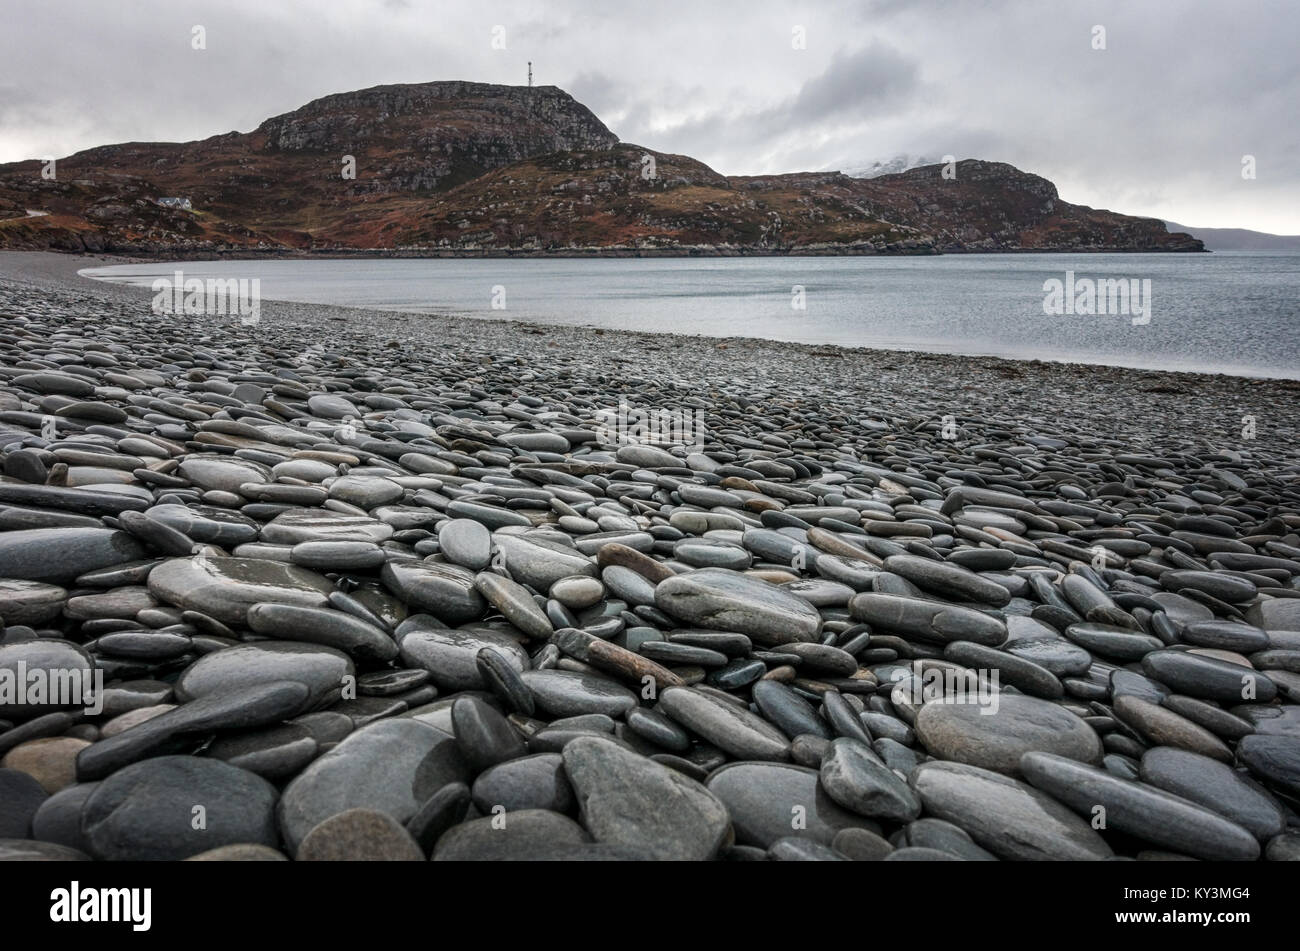 Beautiful flat pebbles on the pebble beach at Ardmair, near Ullapool, Scotland - Stock Image